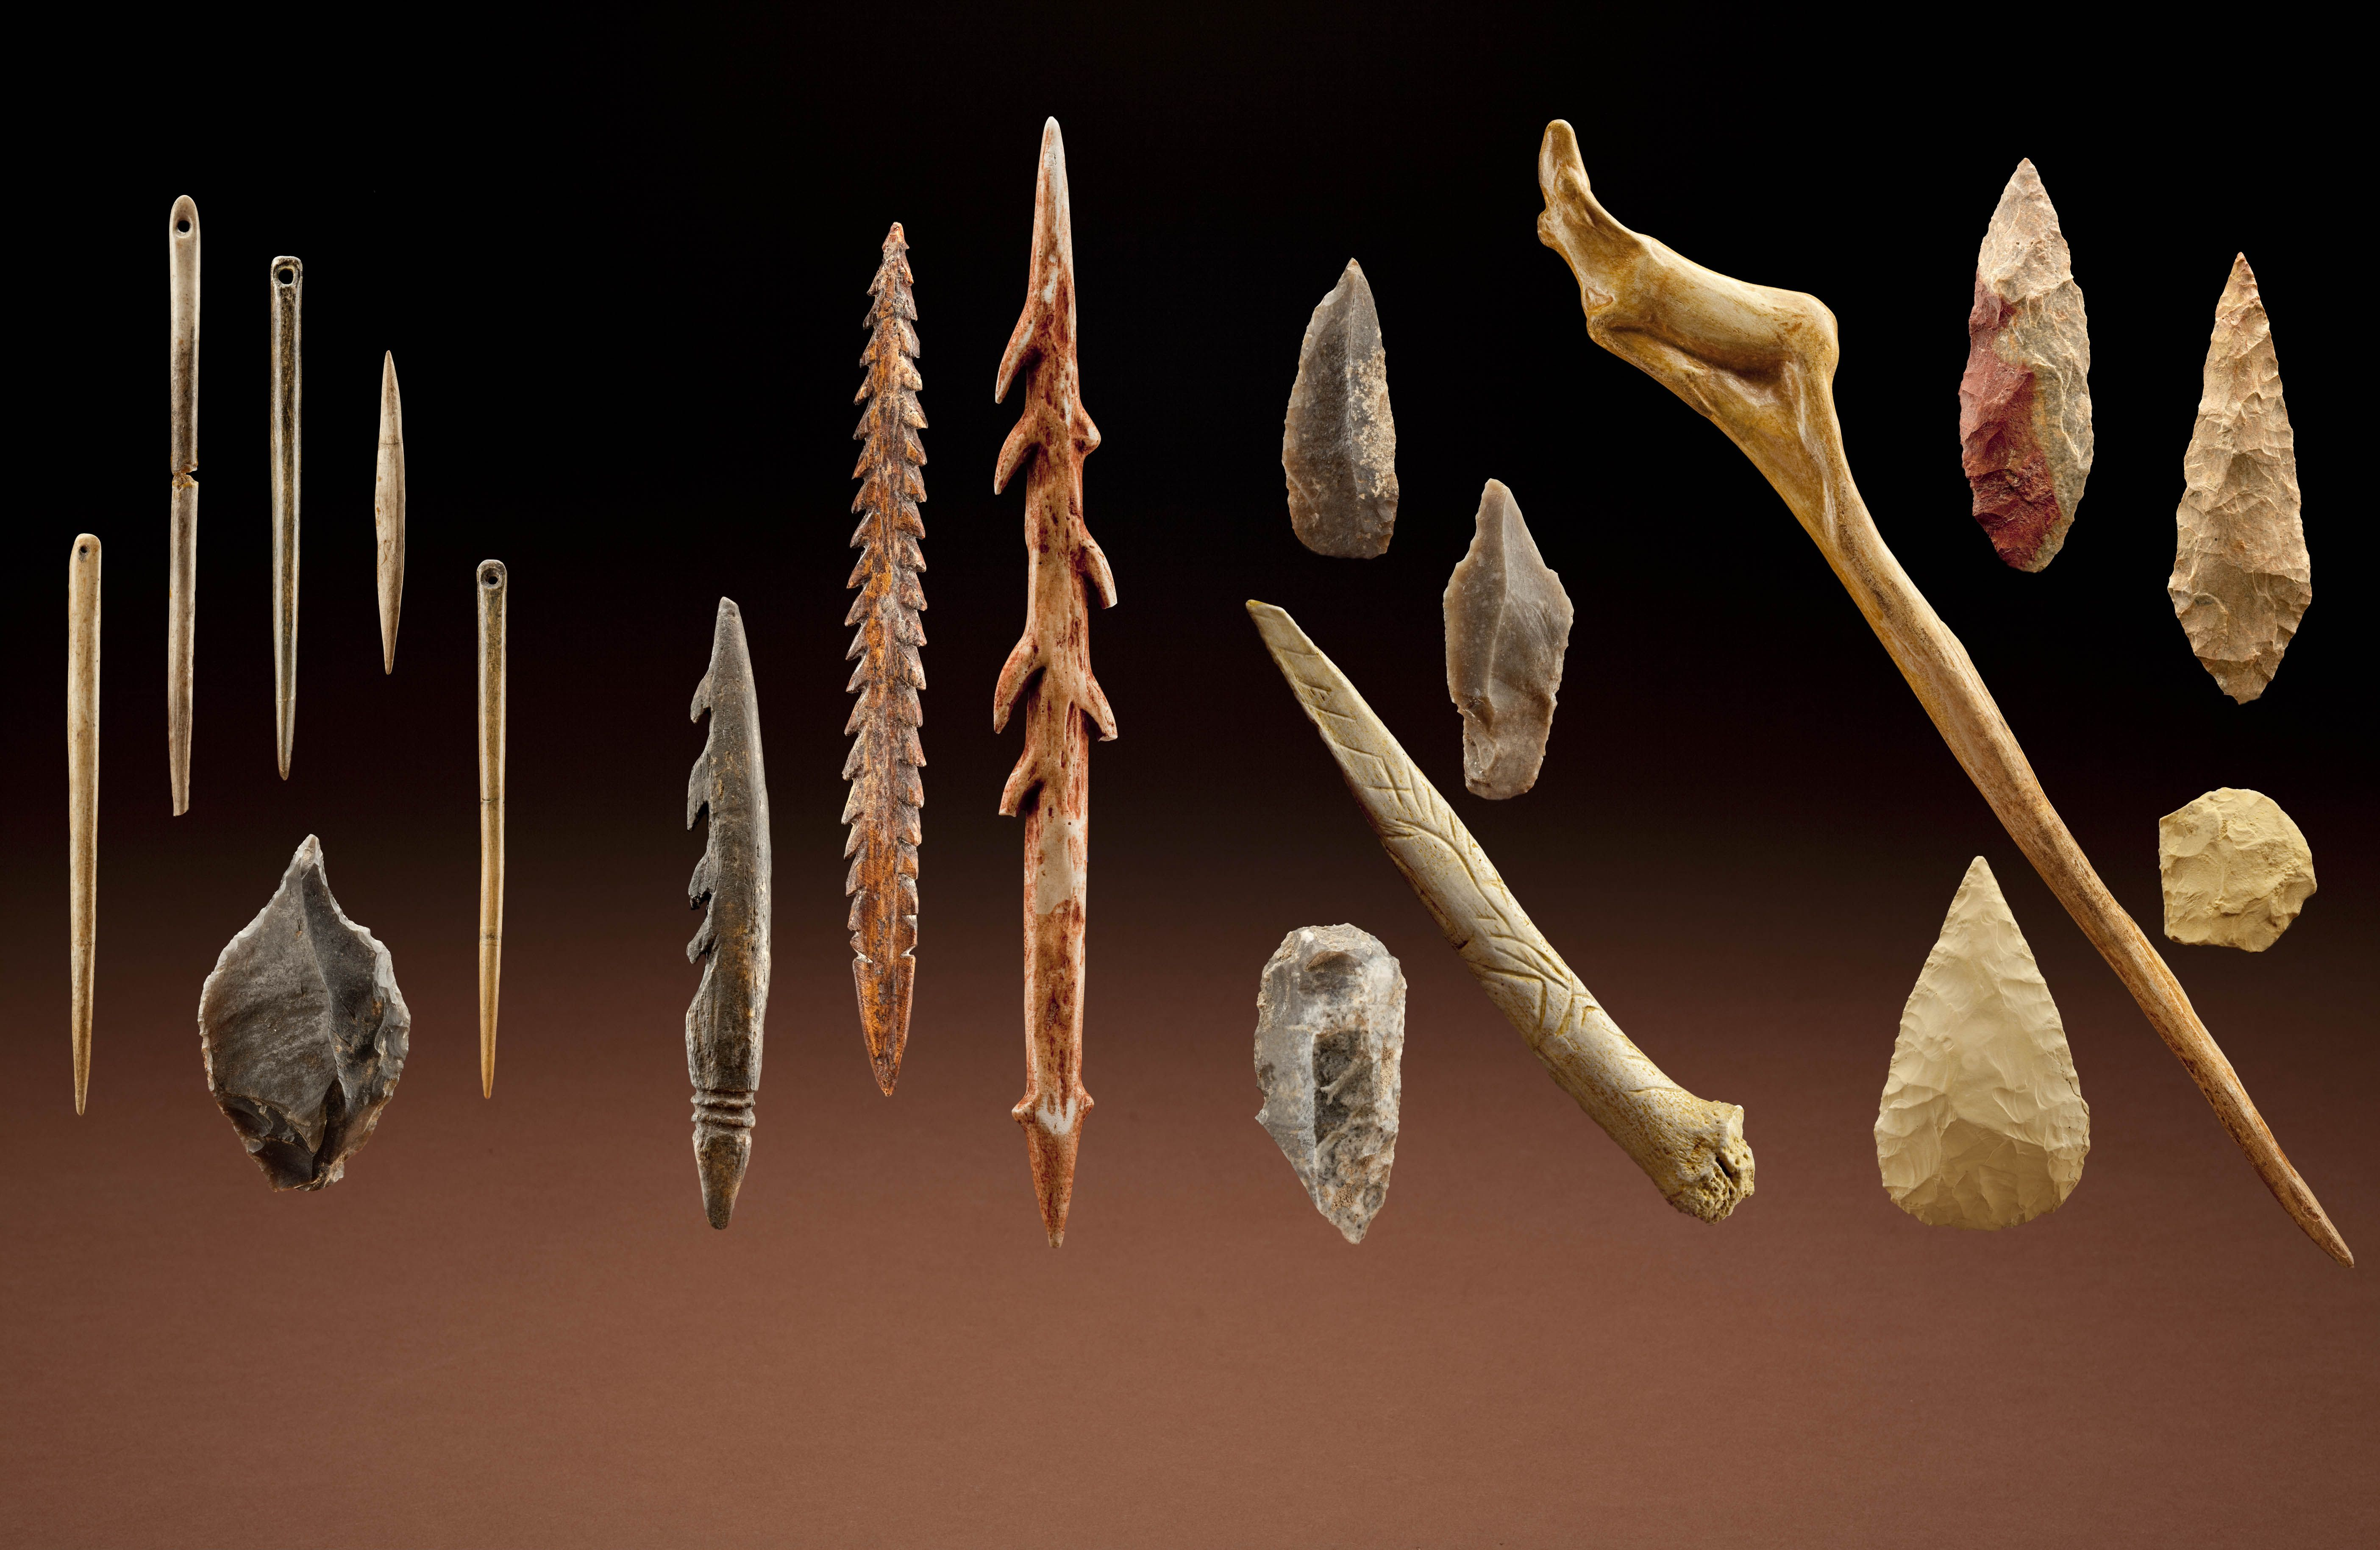 Pin By Lindsay Heilner On Stone Age